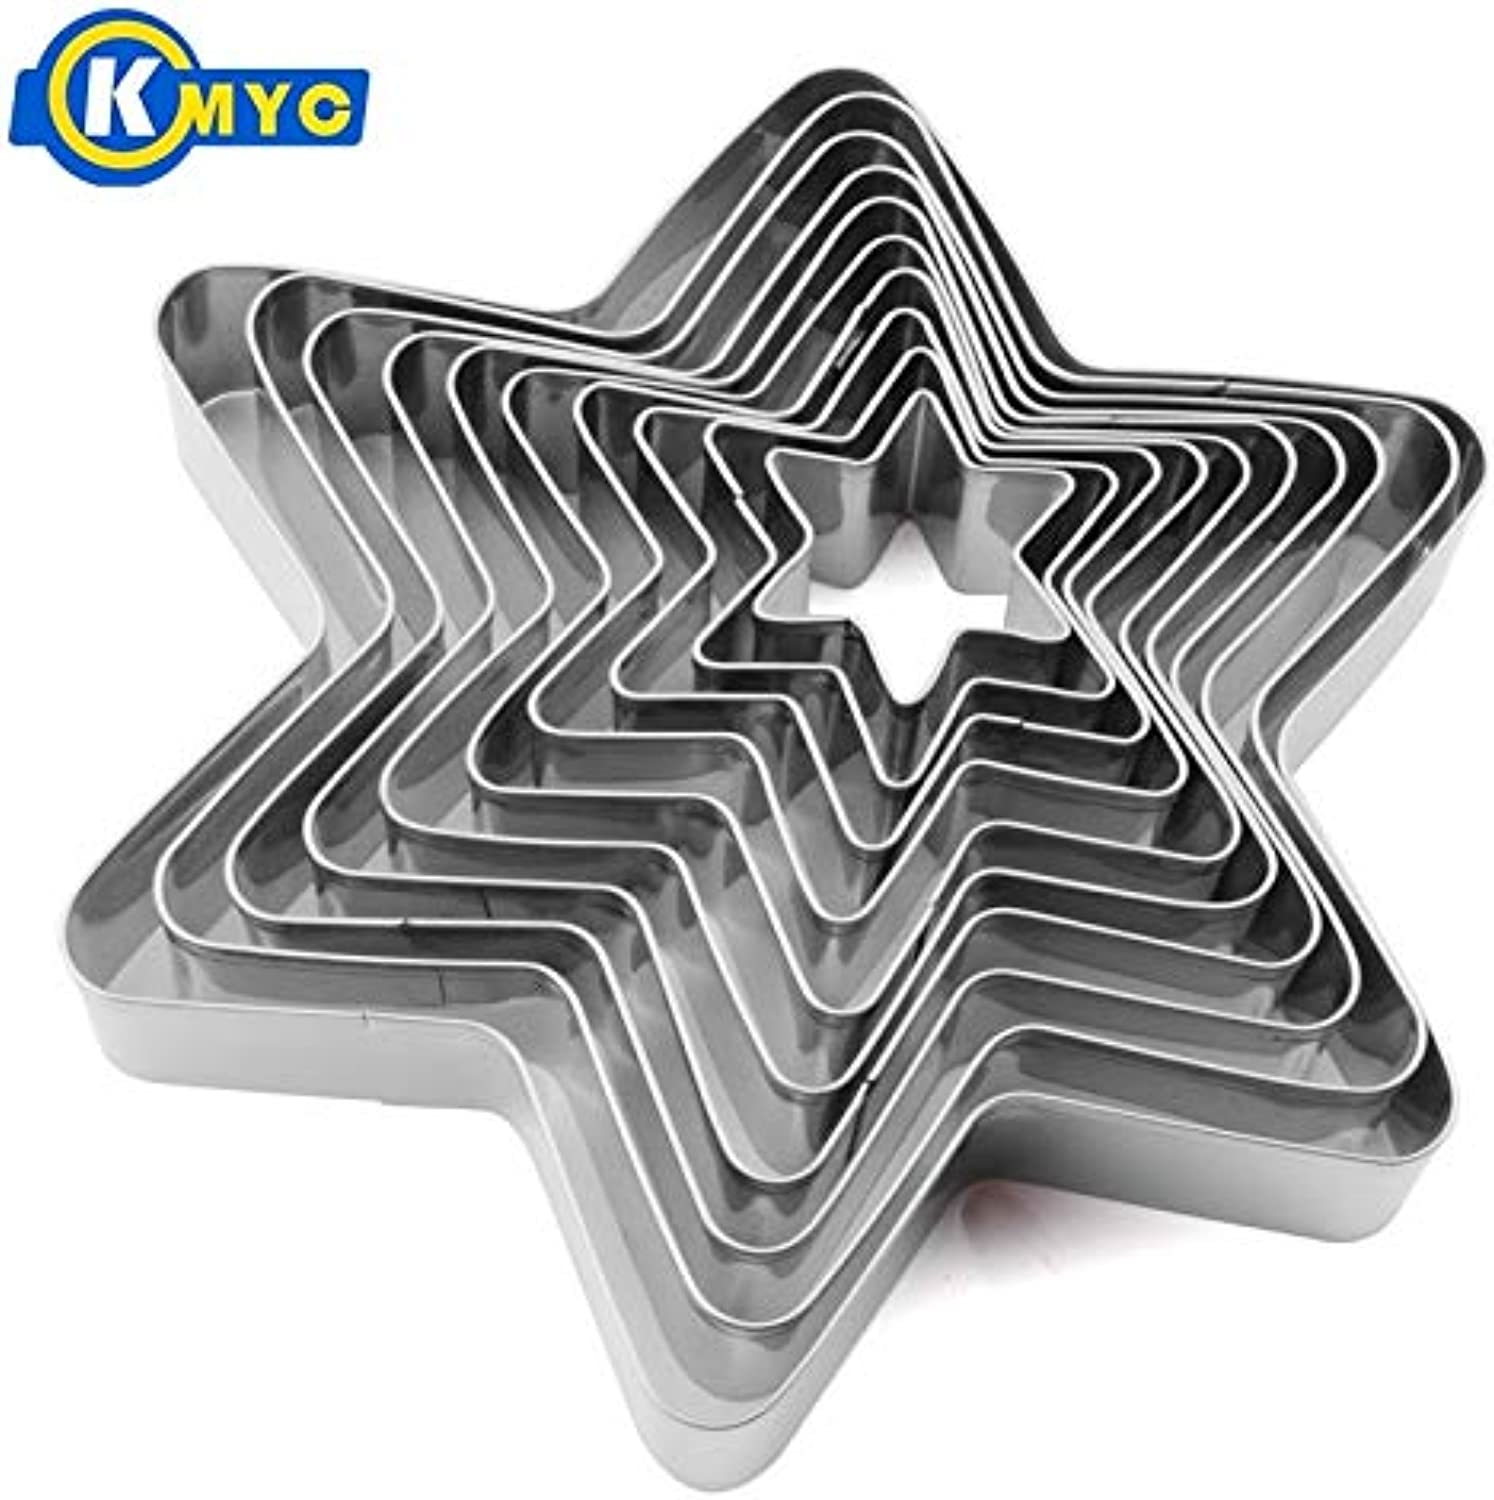 KMYC 10 PCS Stainless Steel Star Cookie Cutter Set for DIY Baking Decorating Fondant Decorating Molds Kitchen Baking Tools